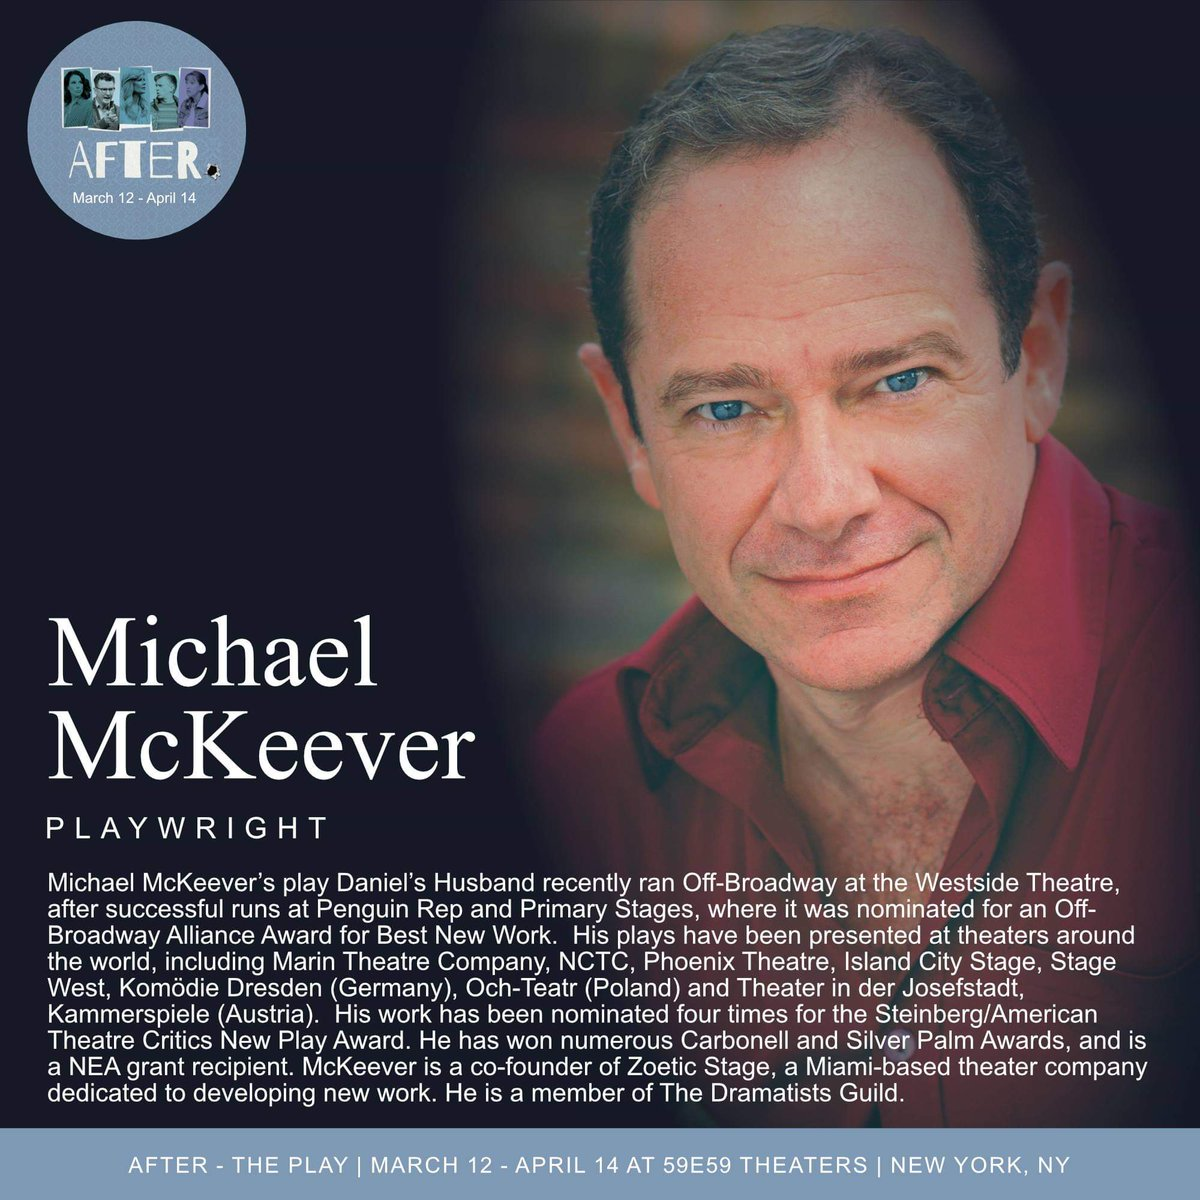 """Michael McKeever (playwright) has written thirty full-length plays that have been produced at theaters around the world. We're so excited to bring """"After"""" by this outstanding playwright to New York City. #NYC #theater #premiere #playwright #MichaelMckeever #AfterthePlaypic.twitter.com/IekaDXAifV"""